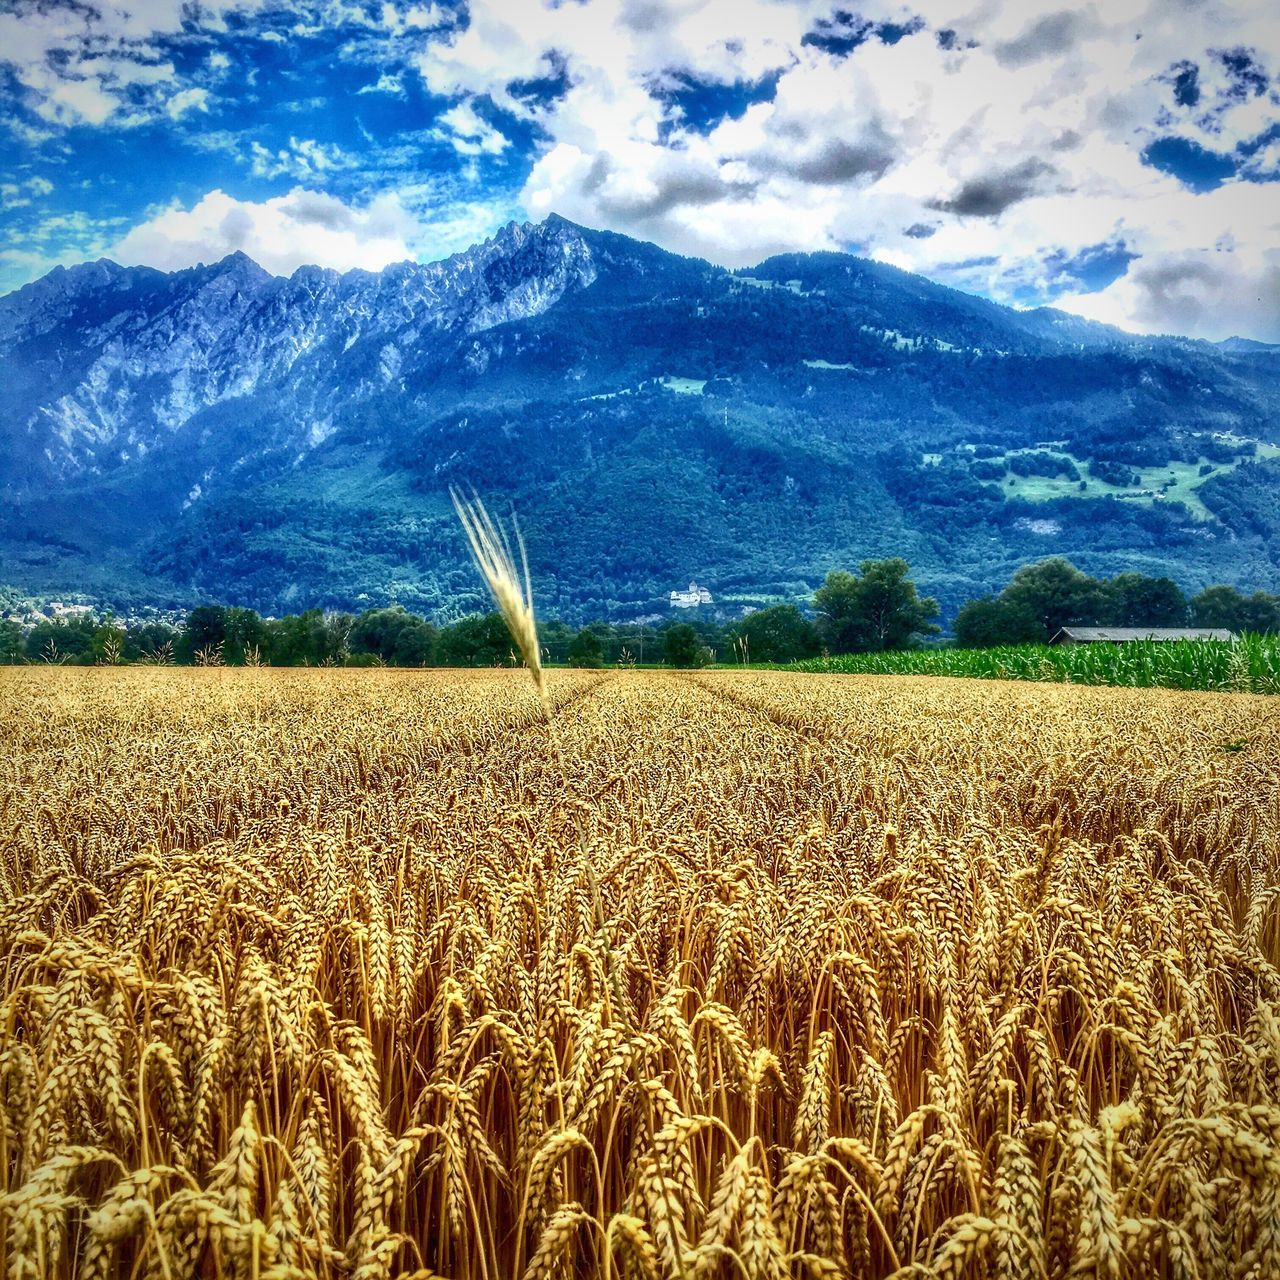 Sommergefühle Kornfeld Field Wearenotalone Crops Crops Field Fringe Cropcircles Nature Sky Cereal Plant Tranquility Tranquil Scene Growth Crop  Beauty In Nature Cloud - Sky Scenics Rural Scene Landscape Day Outdoors No People Ear Of Wheat Wheat Lost In The Landscape